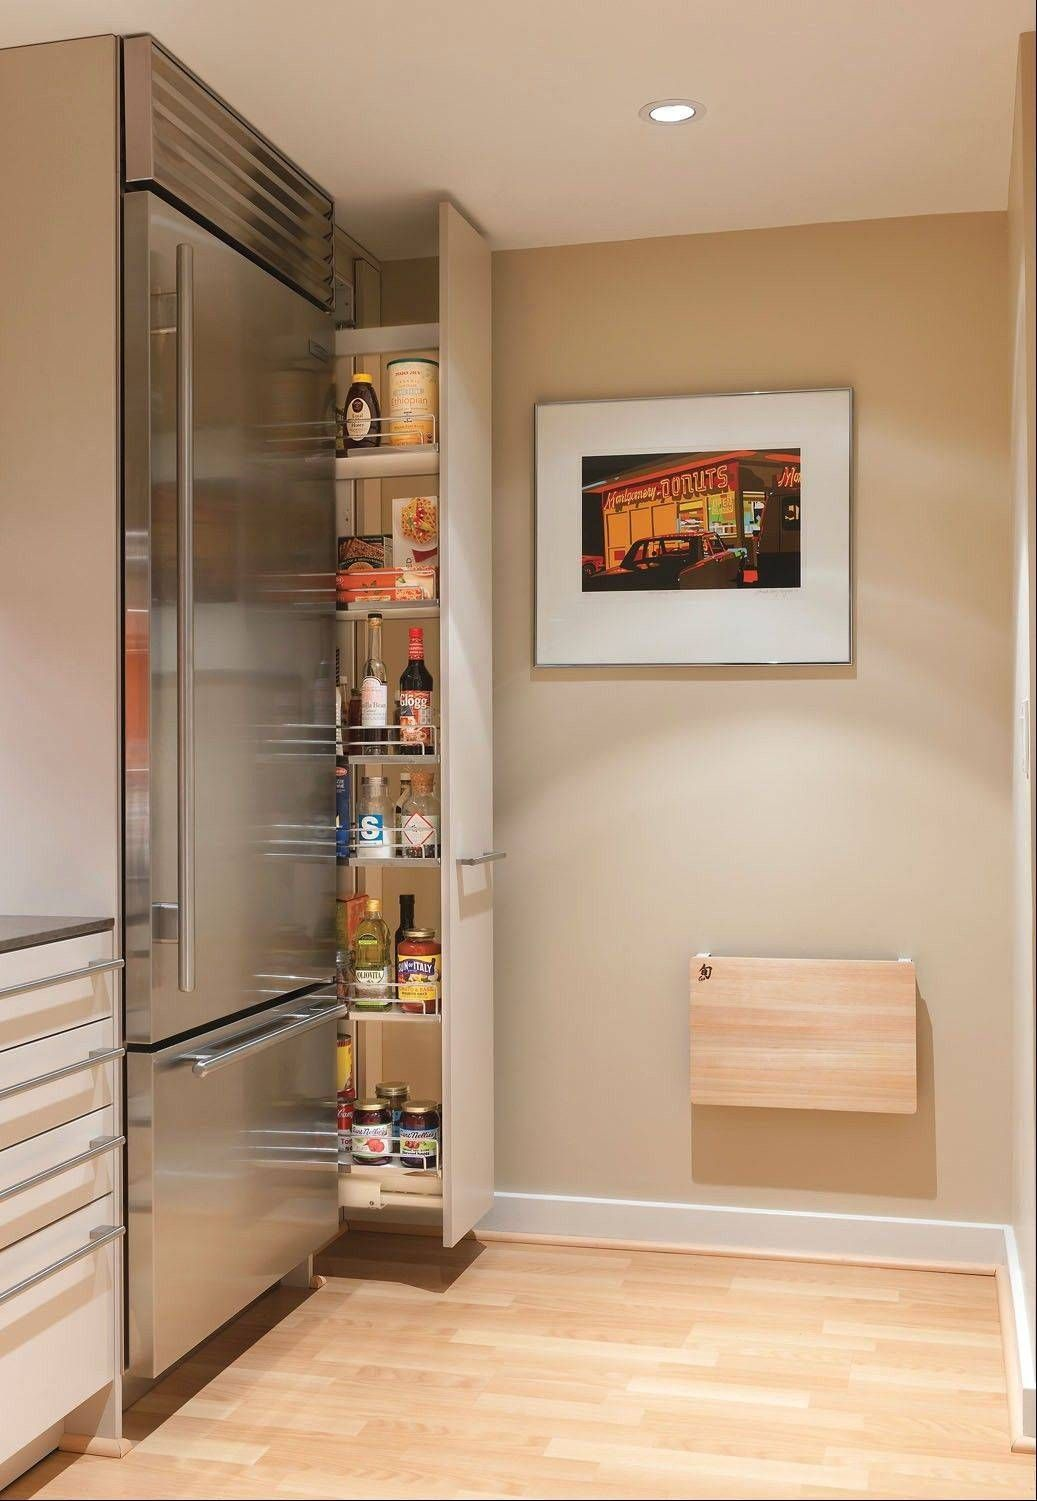 Universal Design Kitchen Cabinets 2021 In 2020 Pantry Design Kitchen Pantry Cabinets Kitchen Design